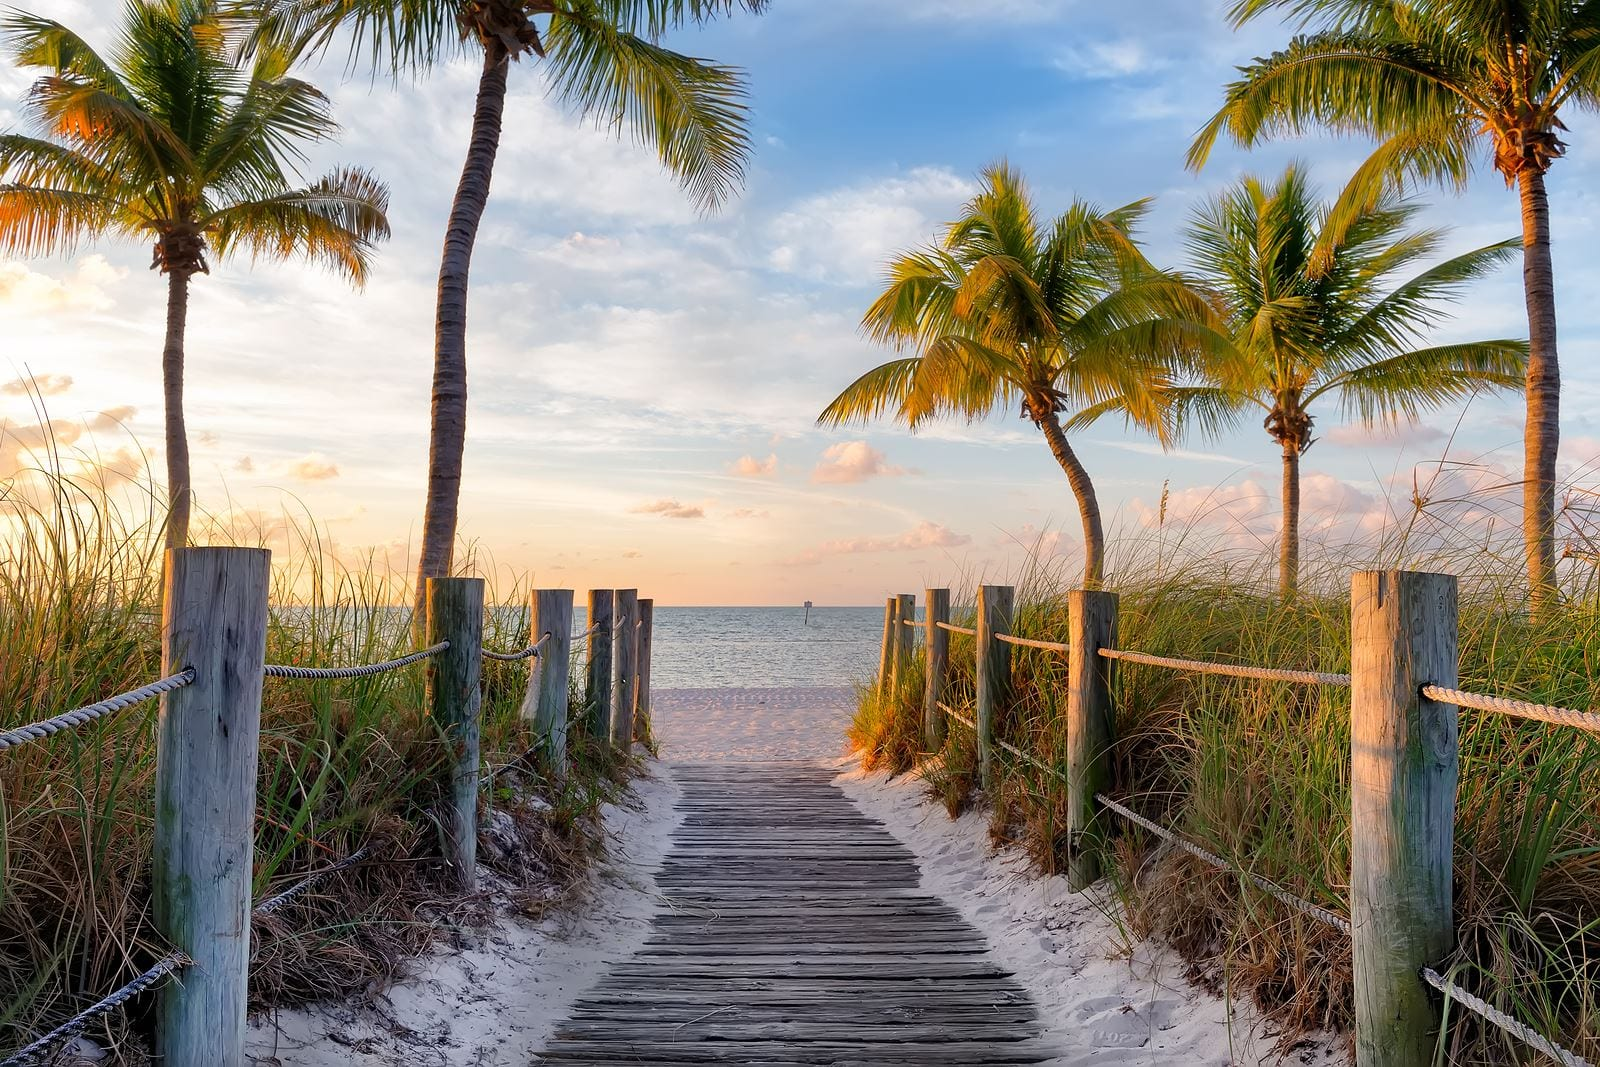 Top Locations to Buy a Vacation Rental for a Warm Winter in the US